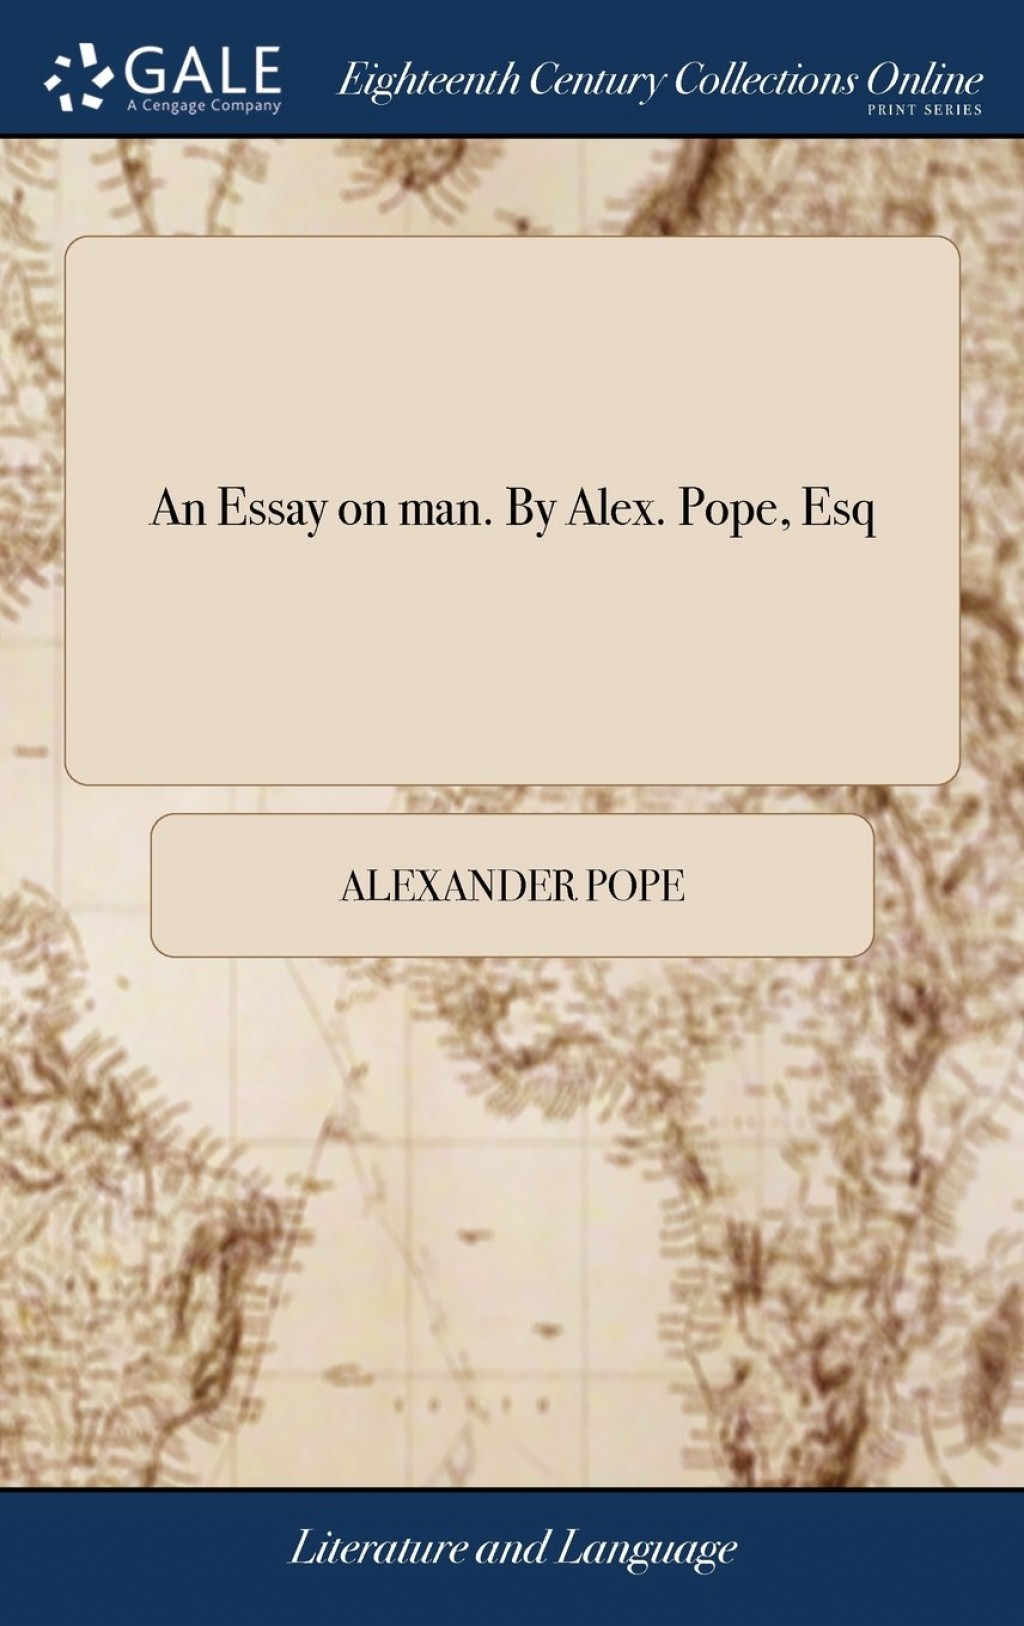 014 Essay Example 617va Jeysl Alexander Pope An On Awesome Man Analysis Summary In Hindi Sparknotes Large